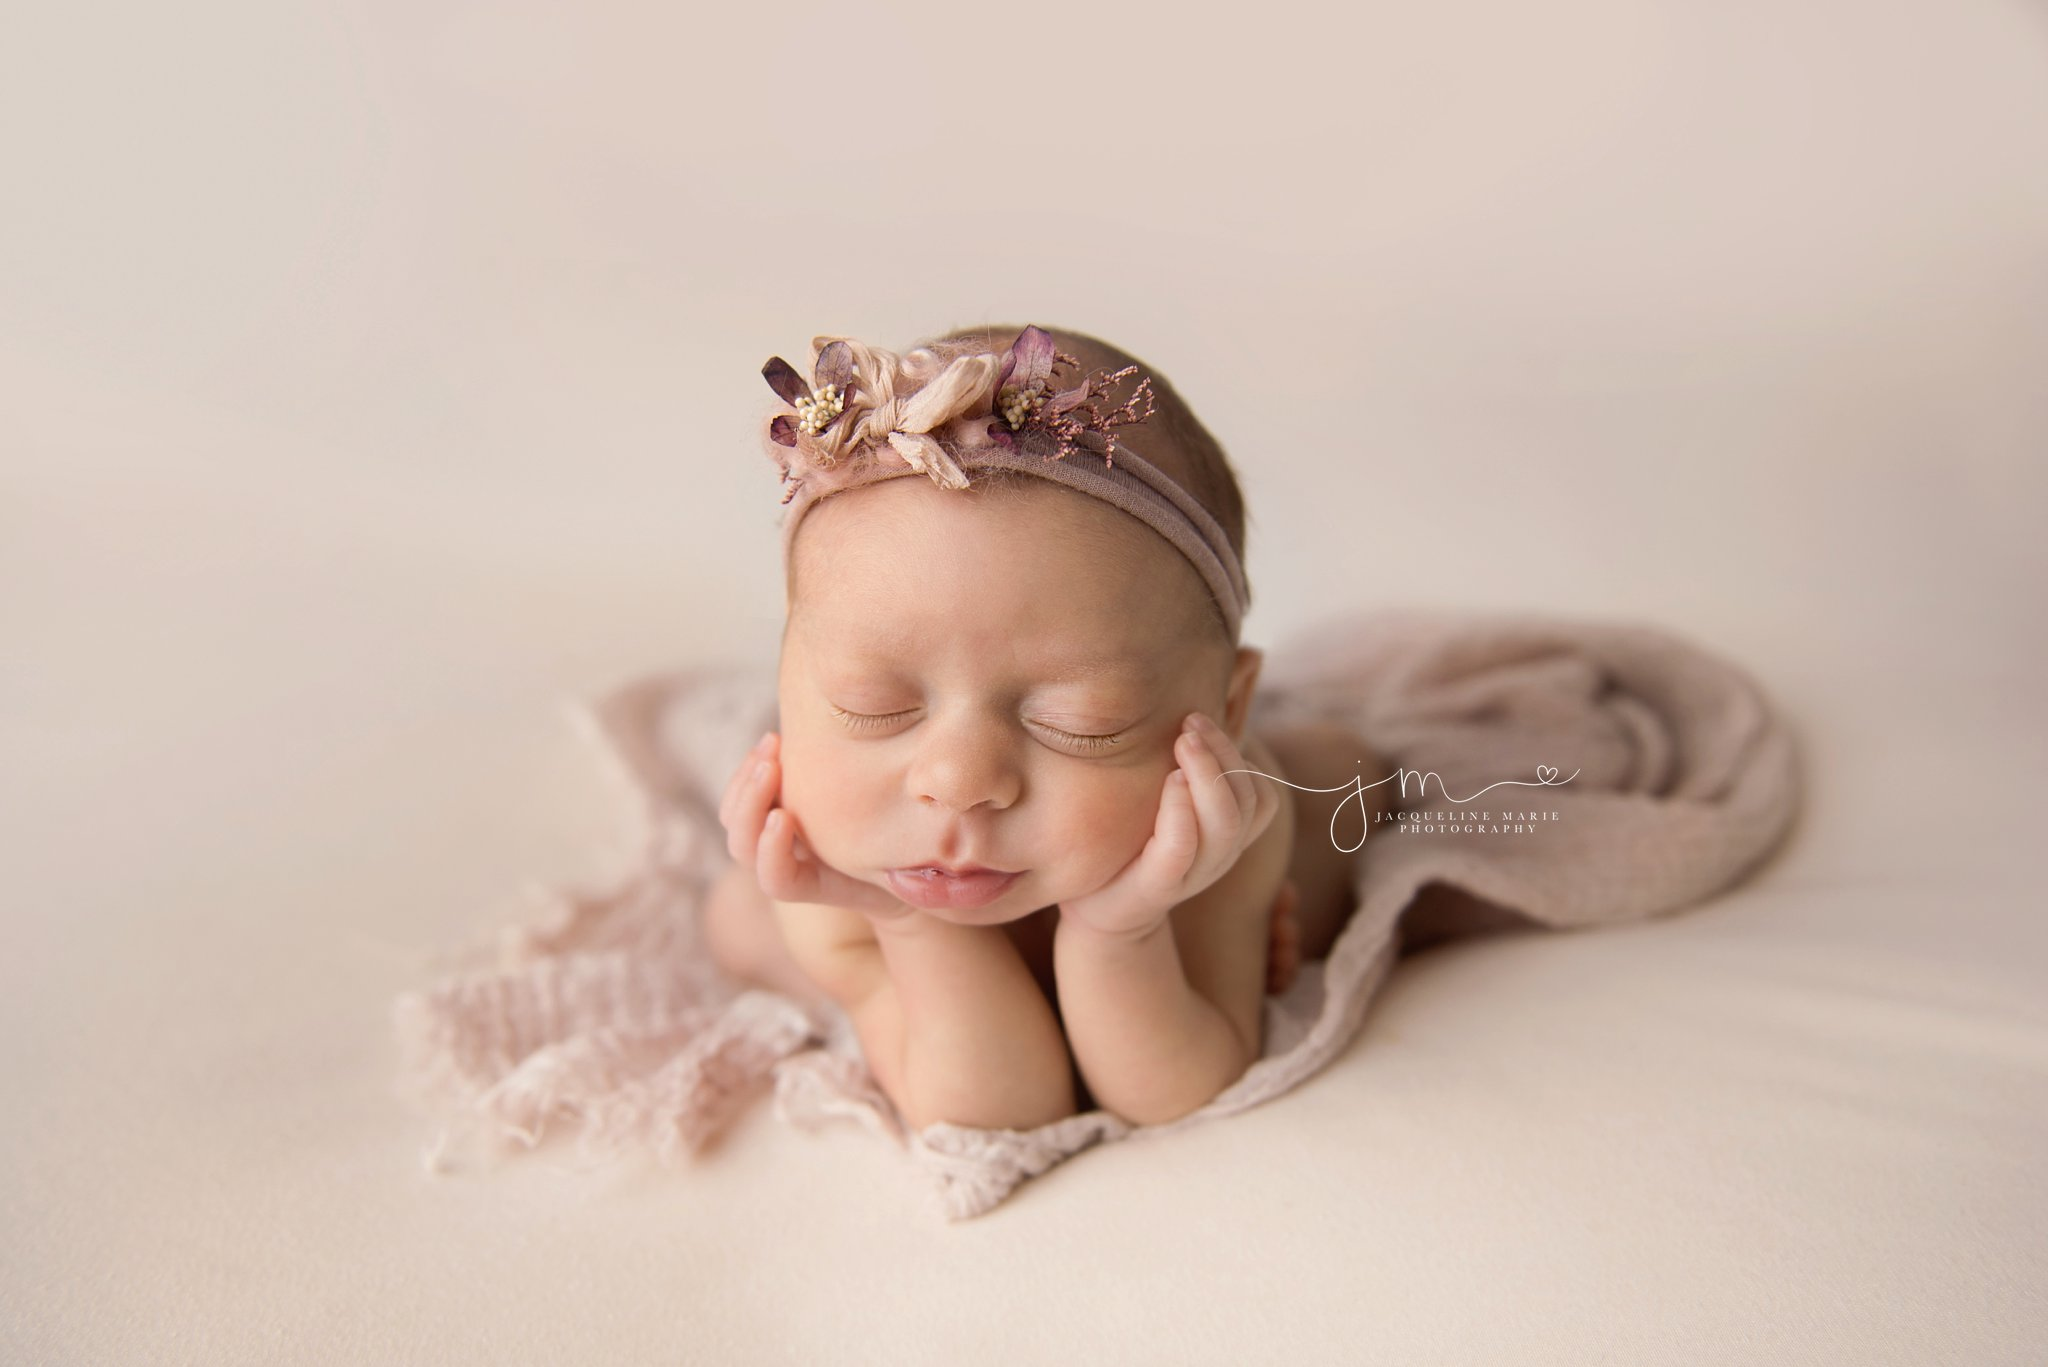 columbus ohio newborn baby girl wears pink and purple headband while posed with her chin in her hands for newborn photography session